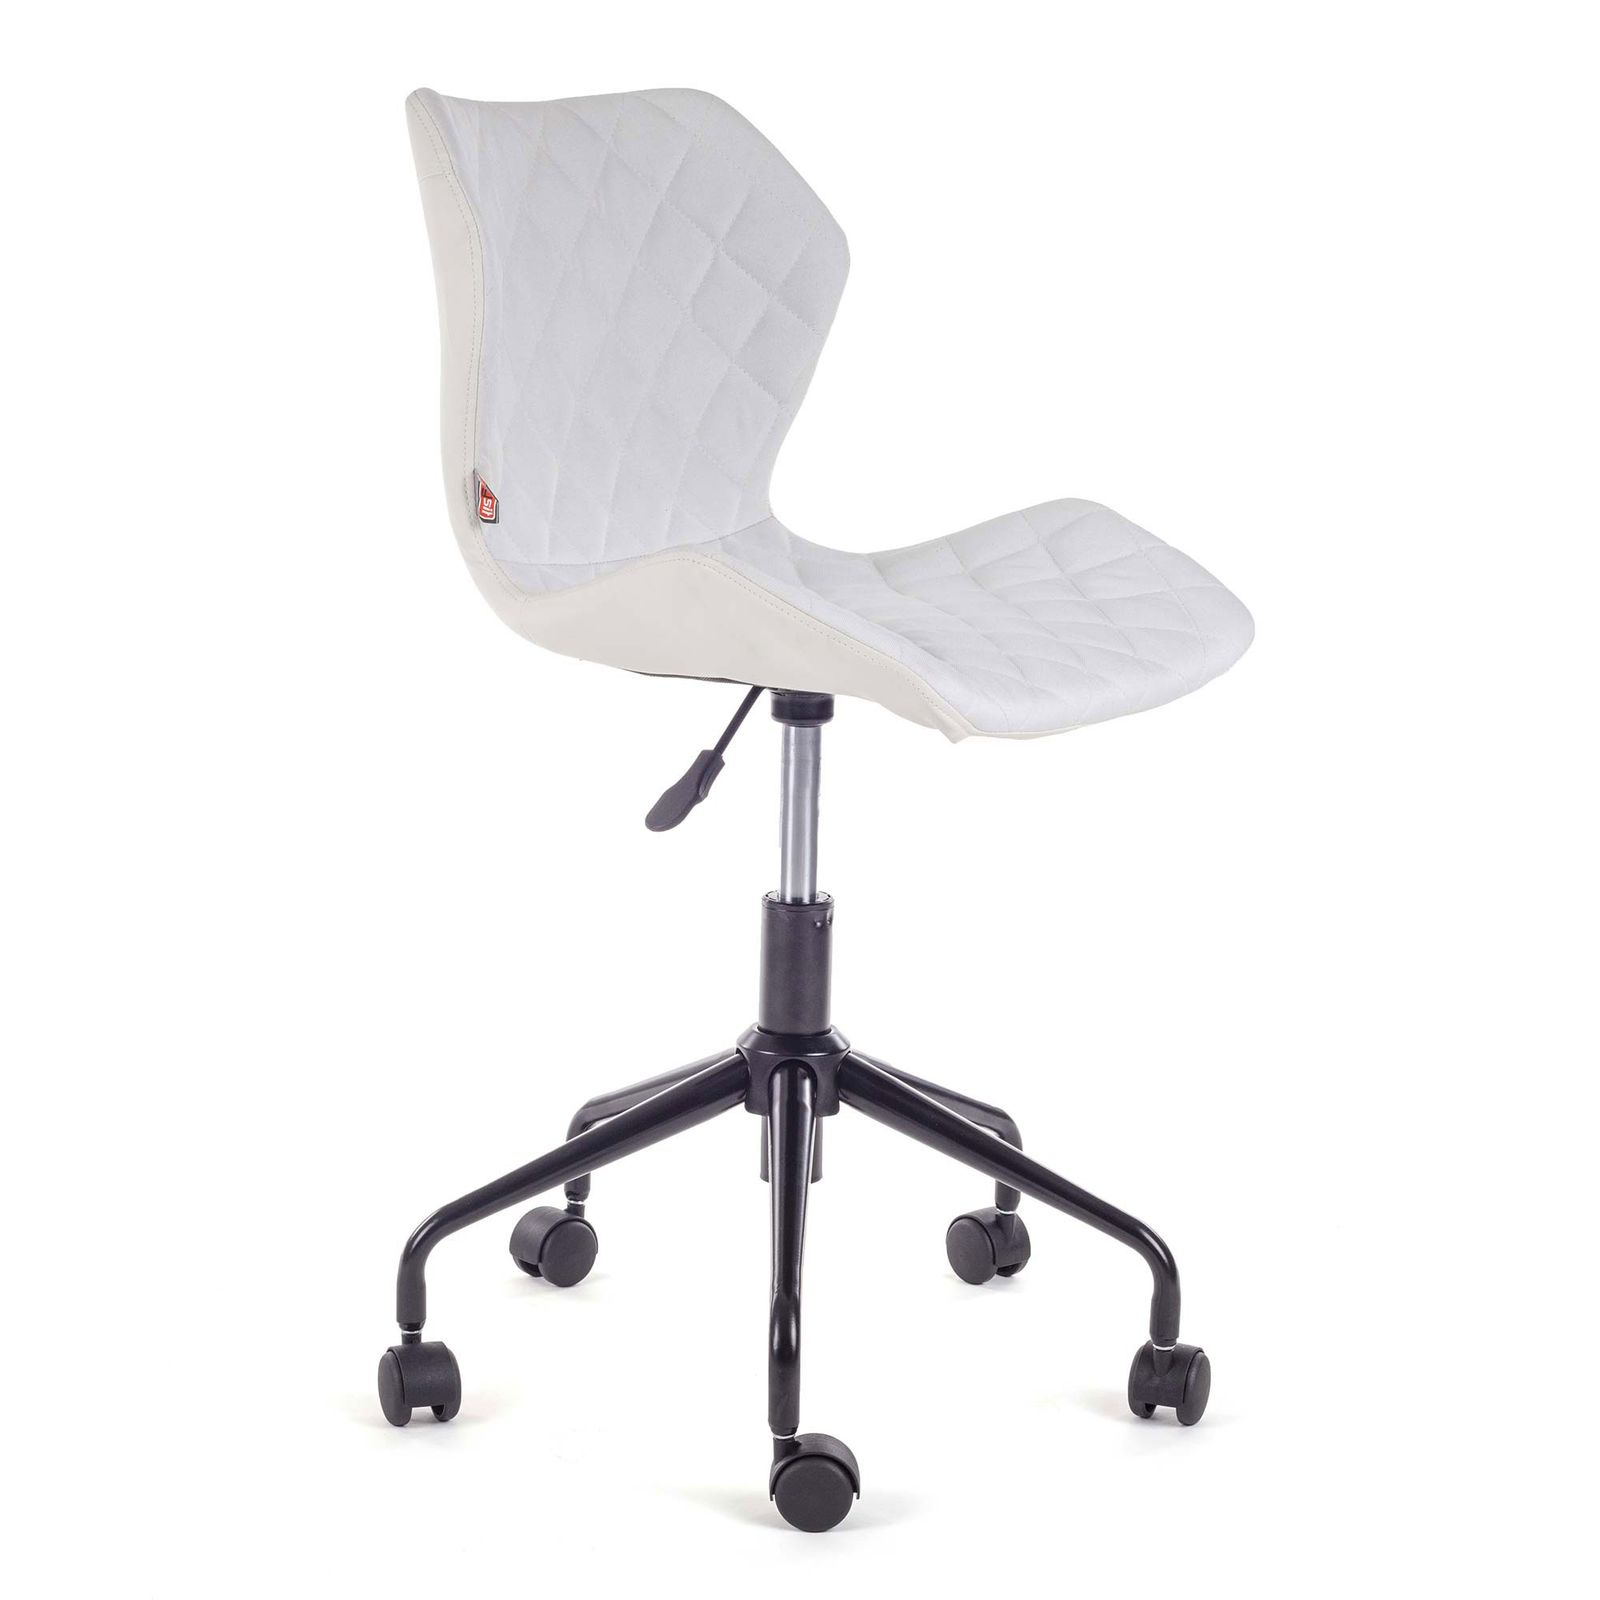 My Sit Office Chair Adjustable Stool Ino White Ma Trading Eu Cheap Prices For Baby Child Office Diy Garden Sports More